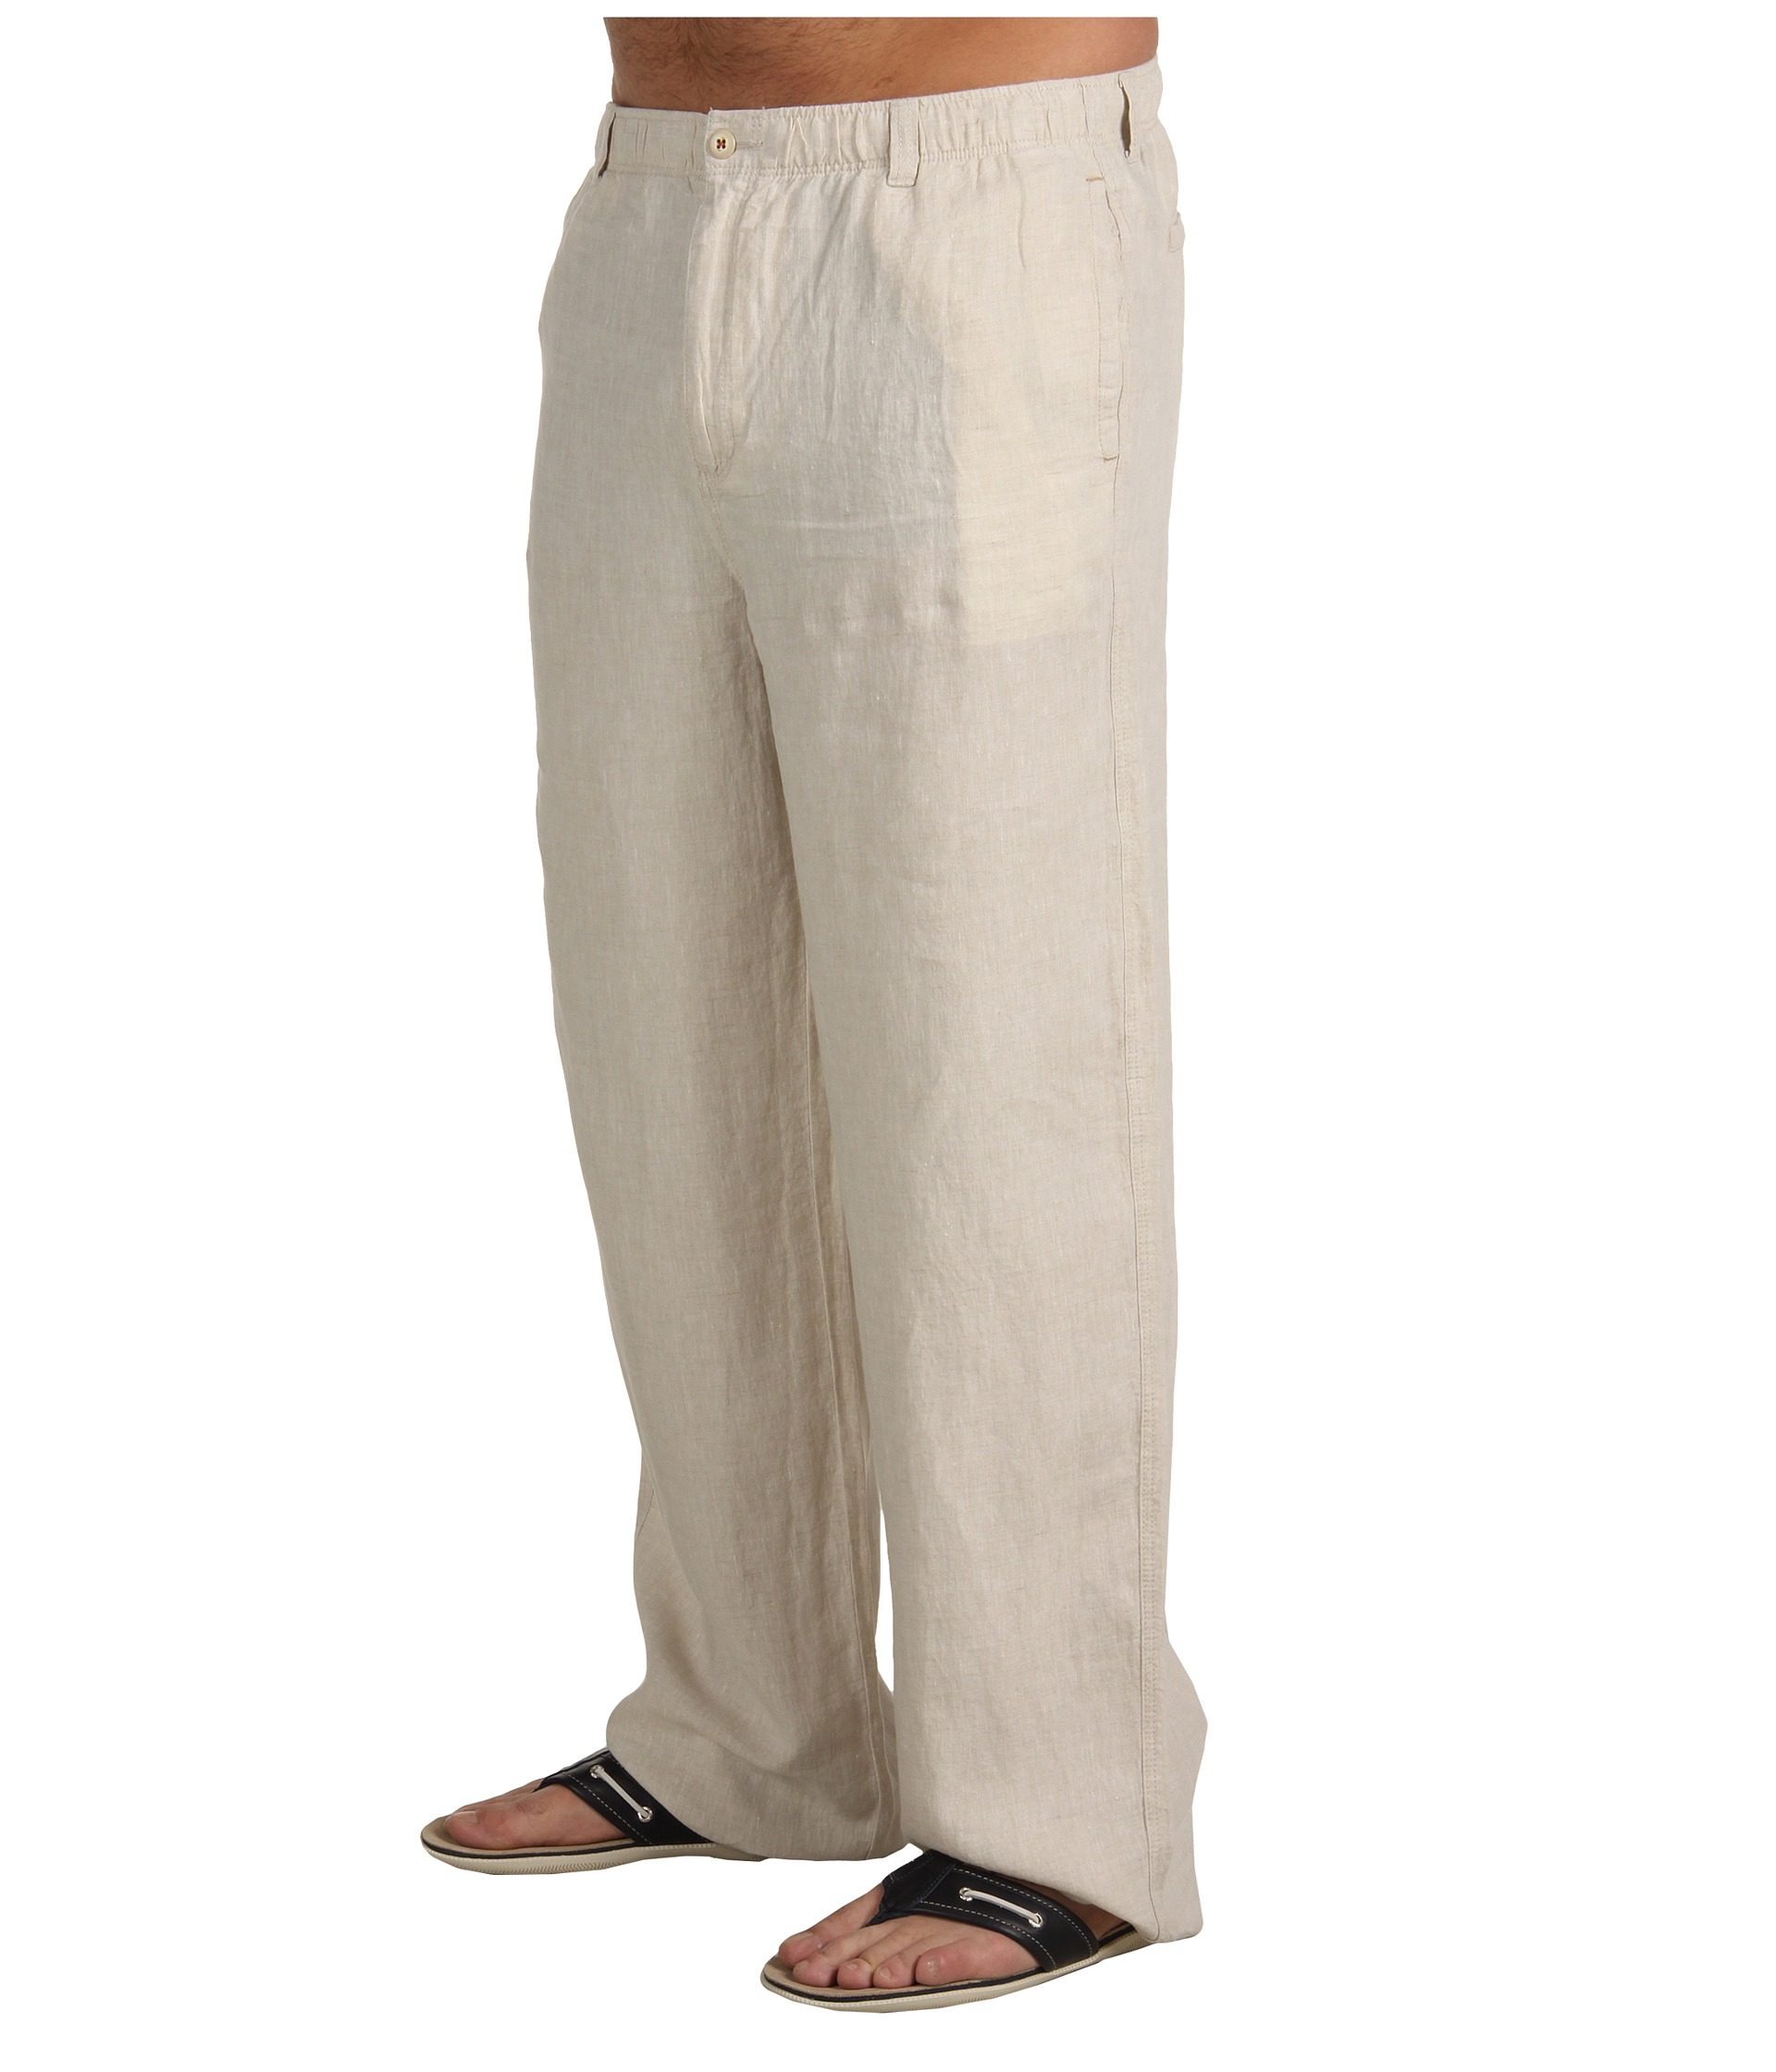 Simple Calvin Klein Linen Drawstring Beach Pants Womens